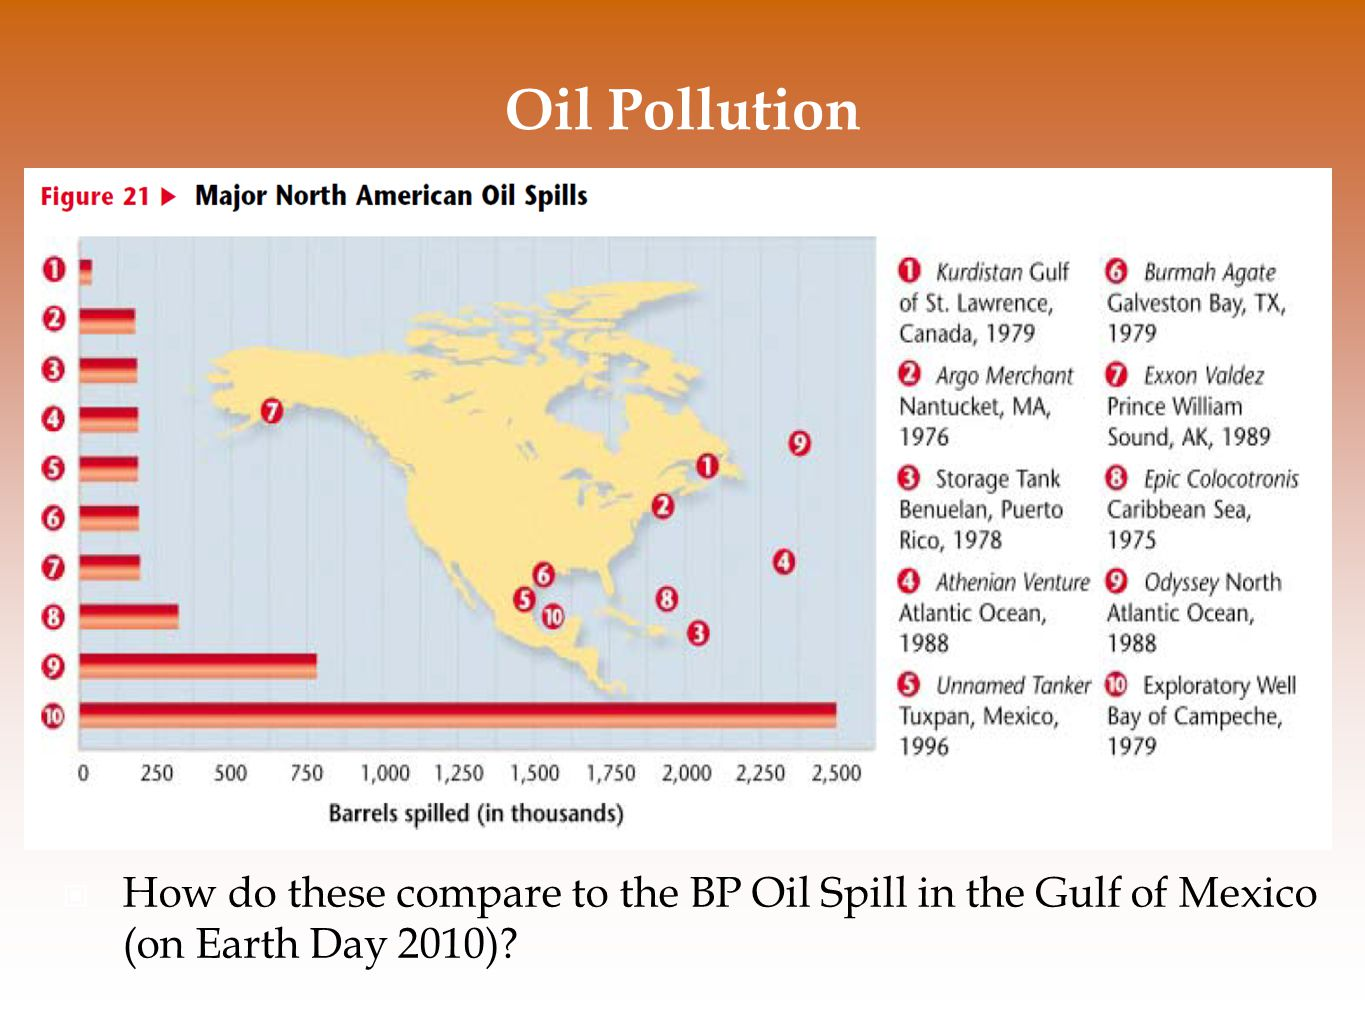 Oil Pollution How do these compare to the BP Oil Spill in the Gulf of Mexico (on Earth Day 2010)